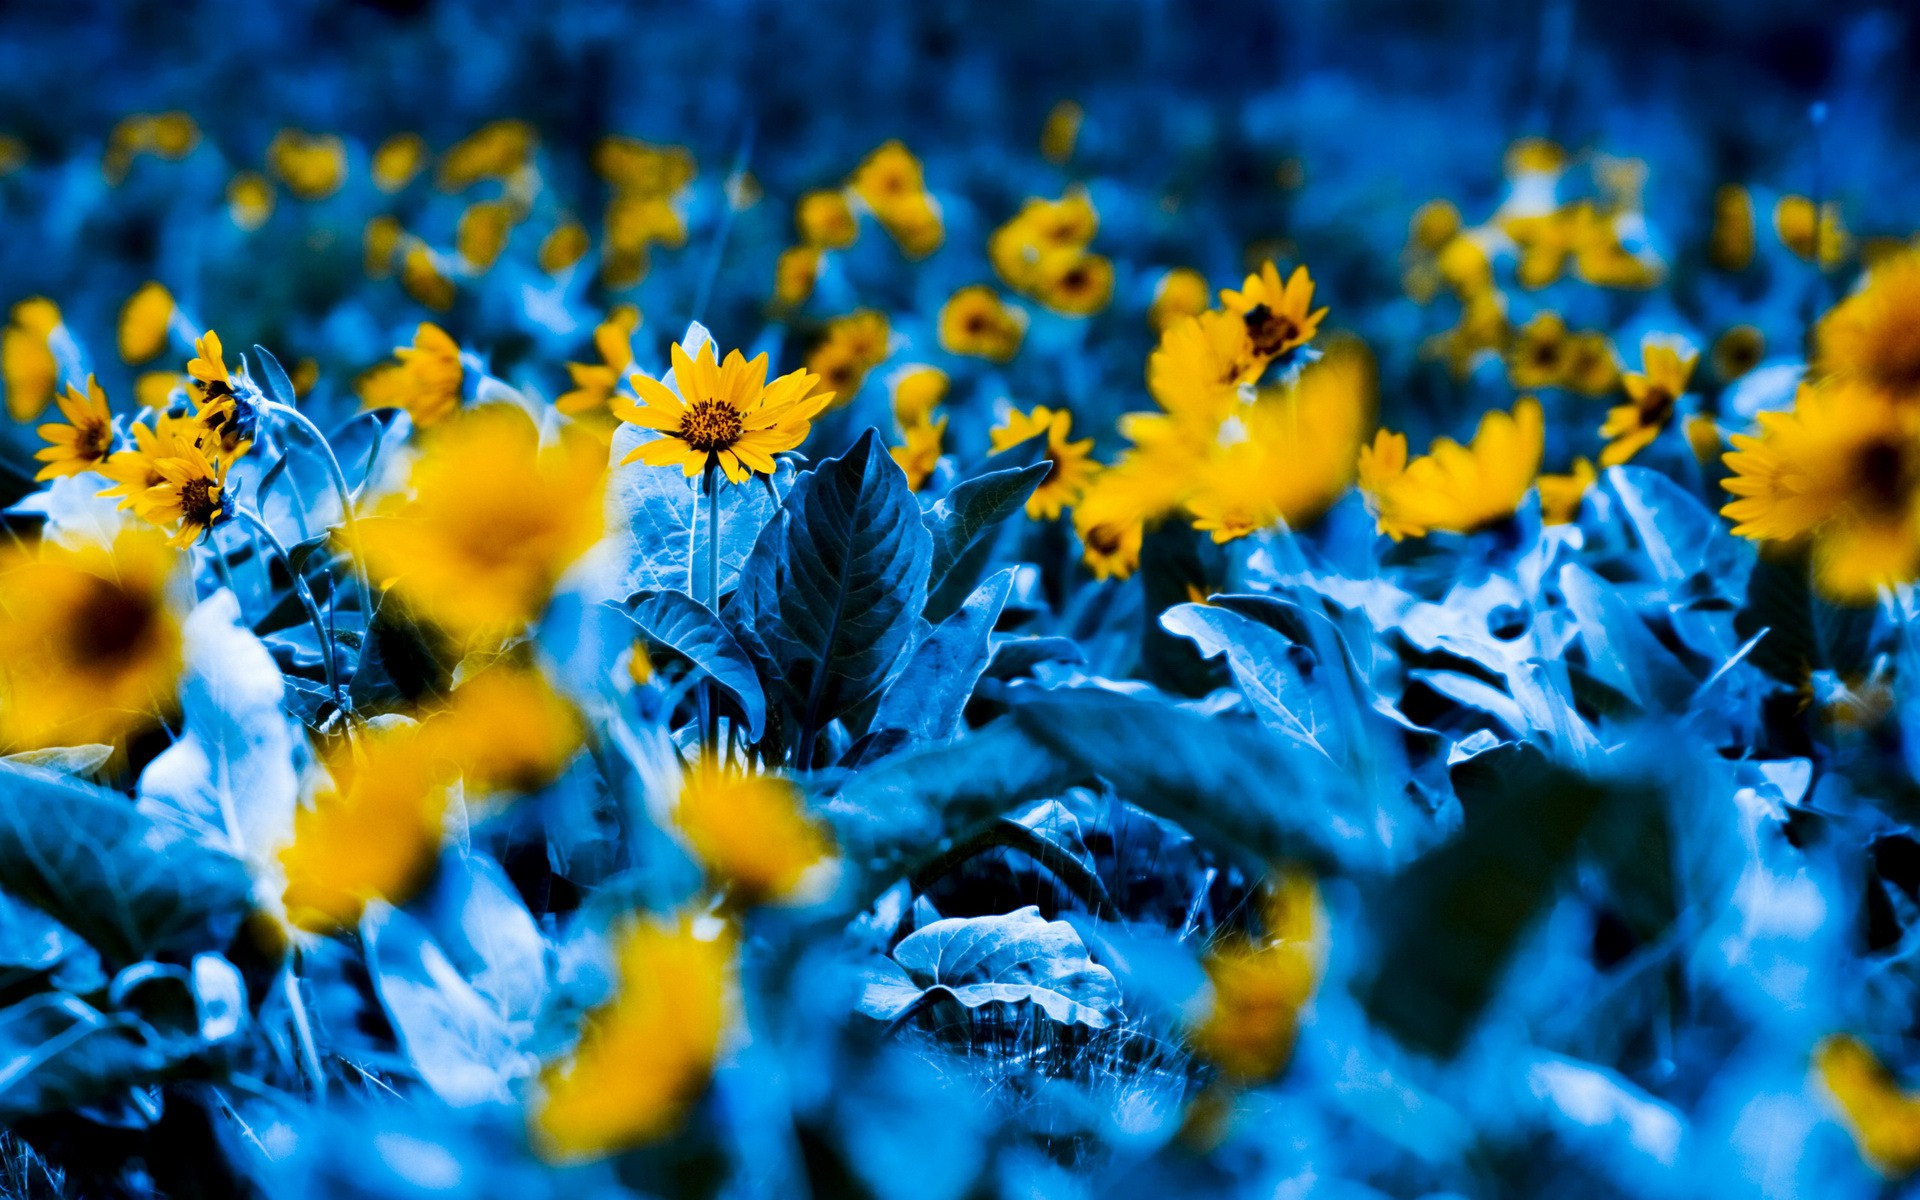 Blue And Yellow Flower Wallpaper 4 Background Hdflowerwallpaper